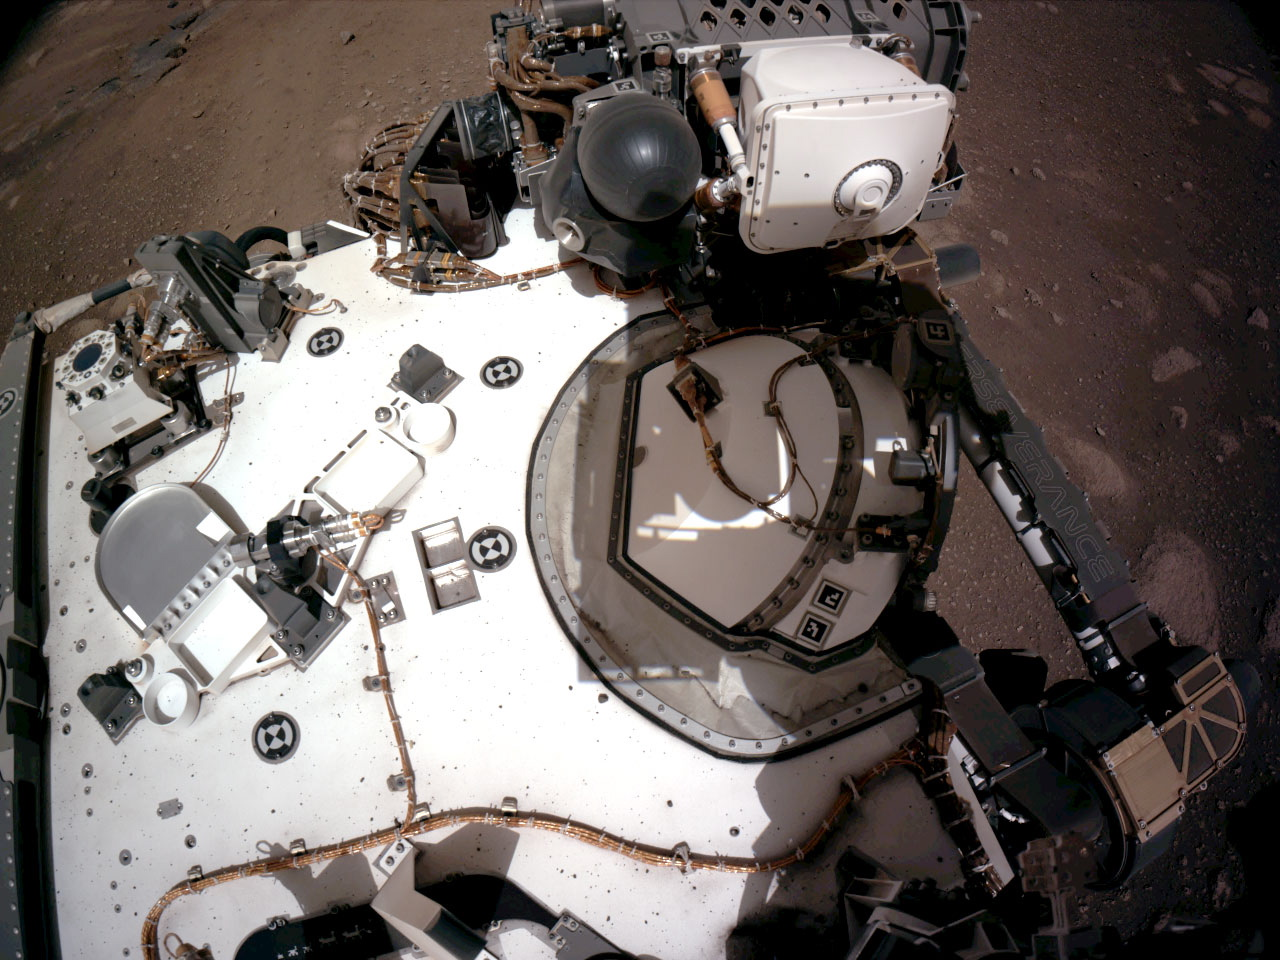 The Navigation Cameras, or Navcams, aboard NASAs Perseverance Mars rover captured in this view of the rover's deck on February 20